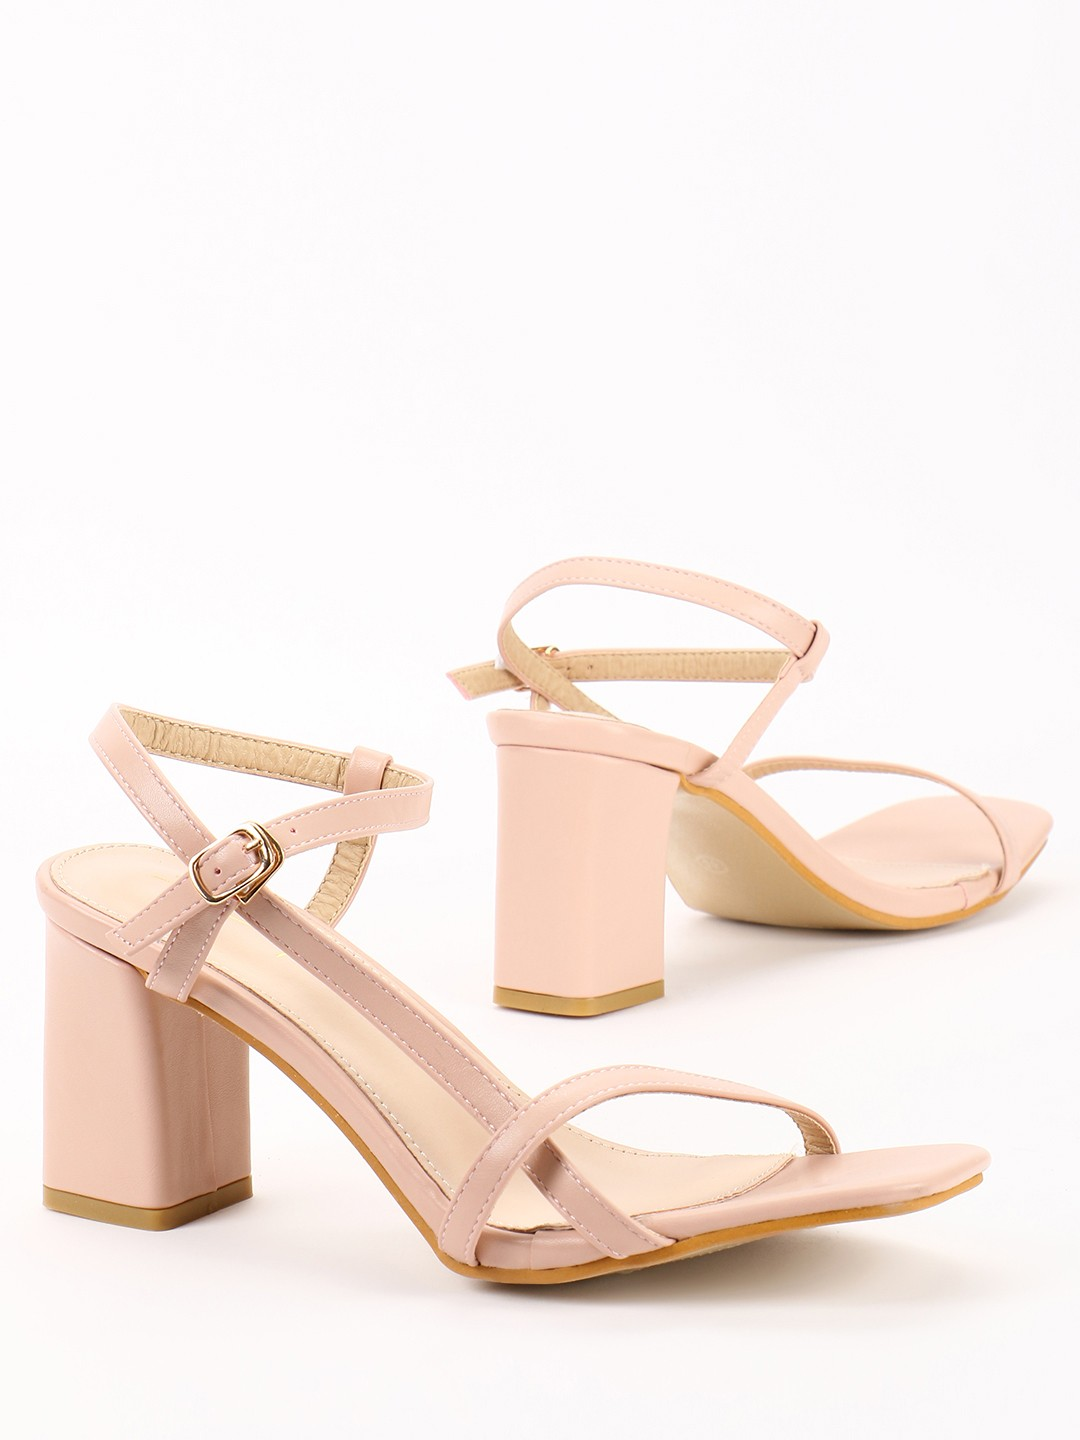 Sole Story Pink Asymmetric Strappy Heeled Sandals 1